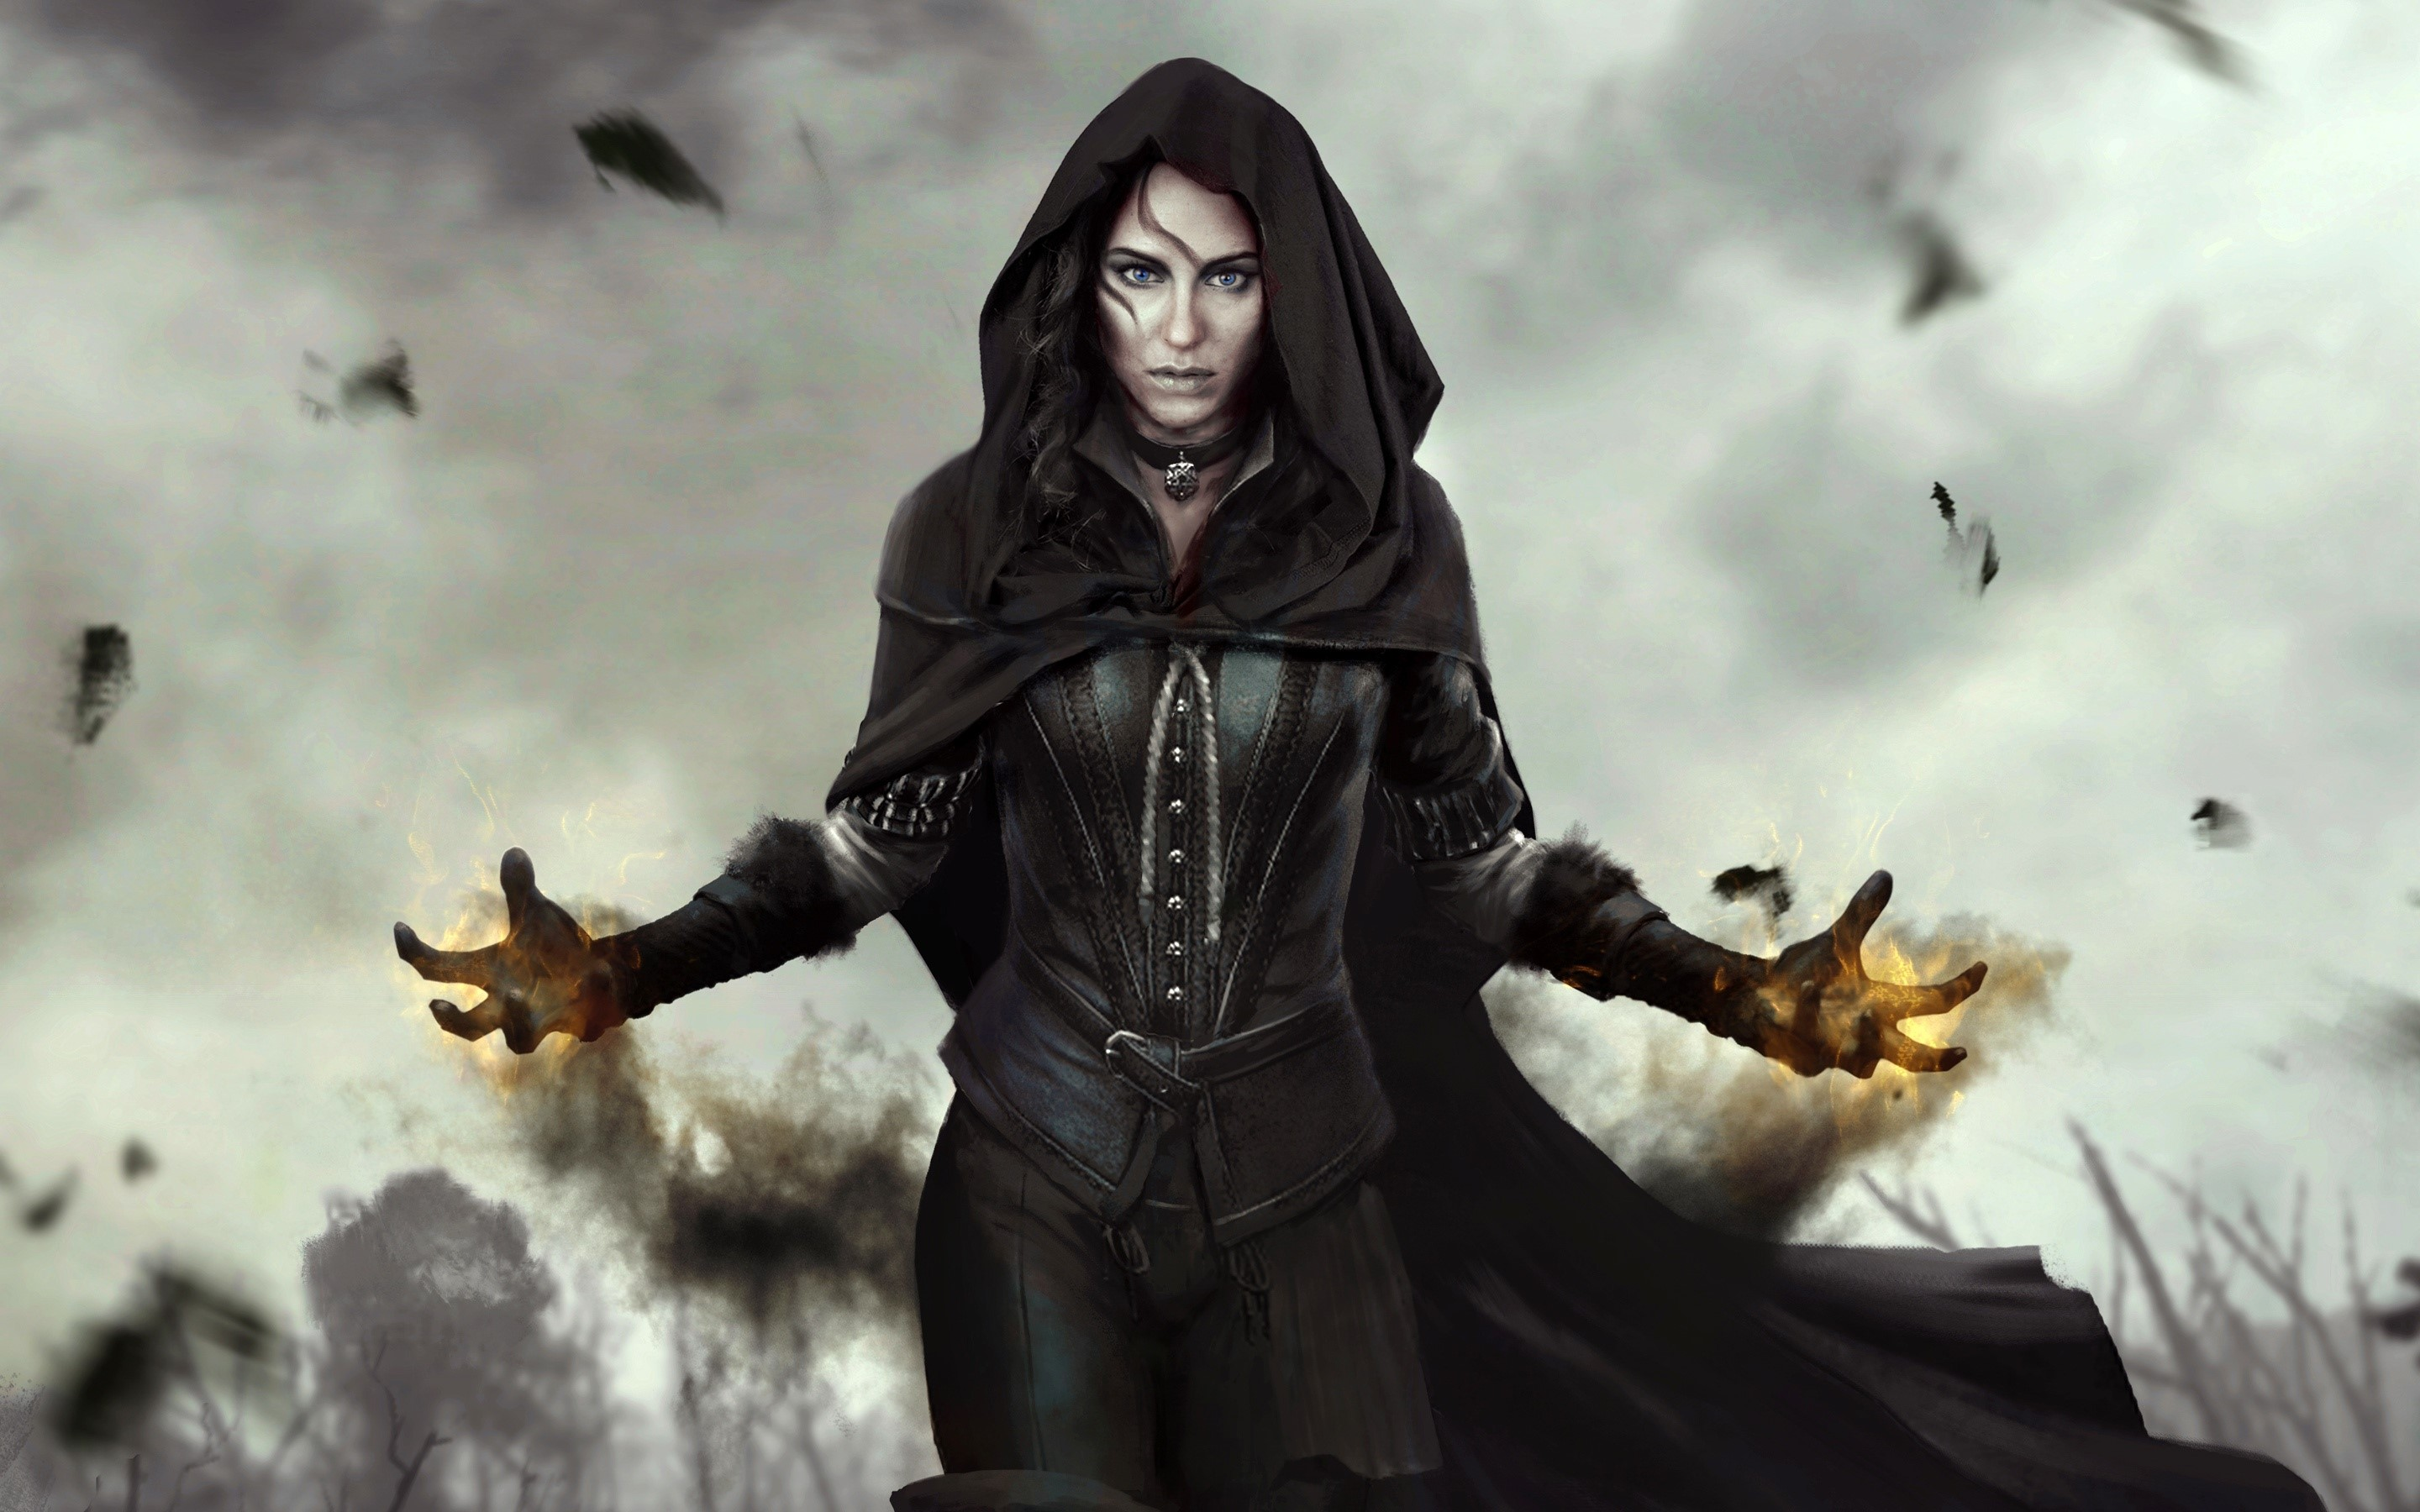 Wallpaper Yennefer de The Witcher 3 Wild Hunt Images